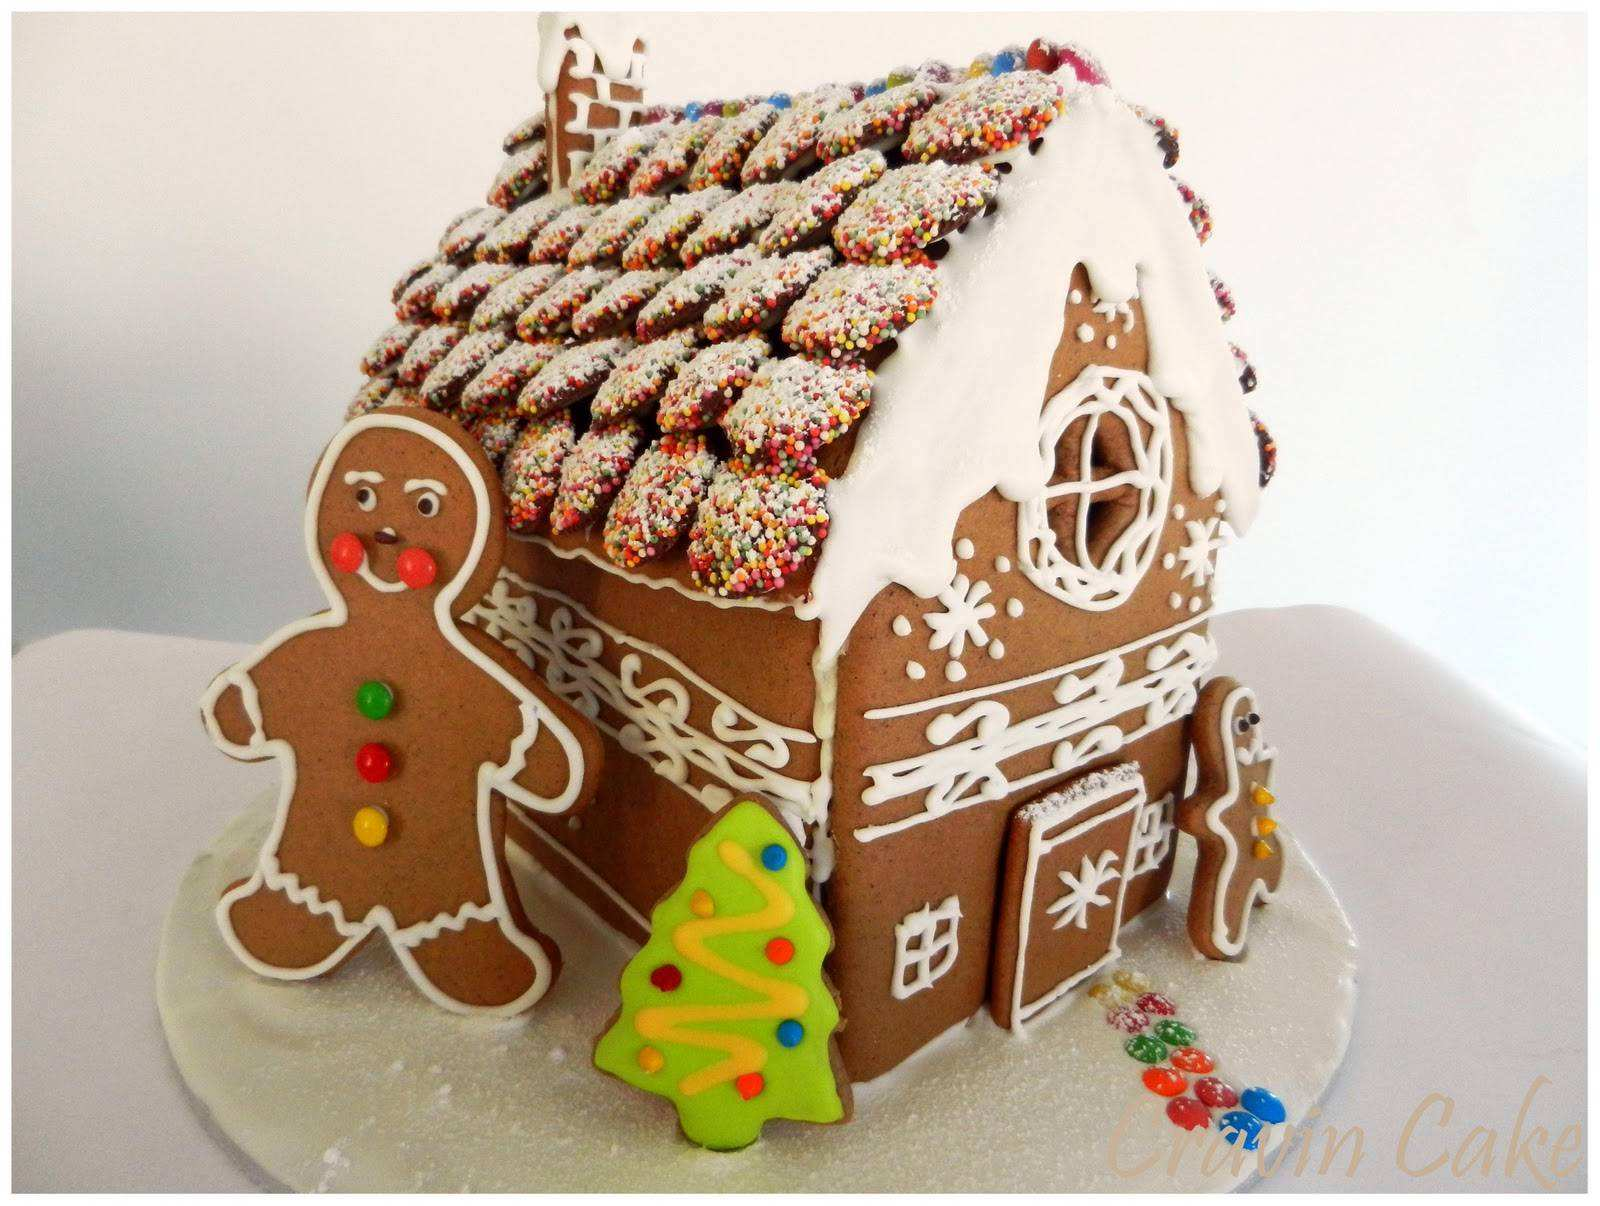 Gienger Bad Cravin Cake Gingerbread House